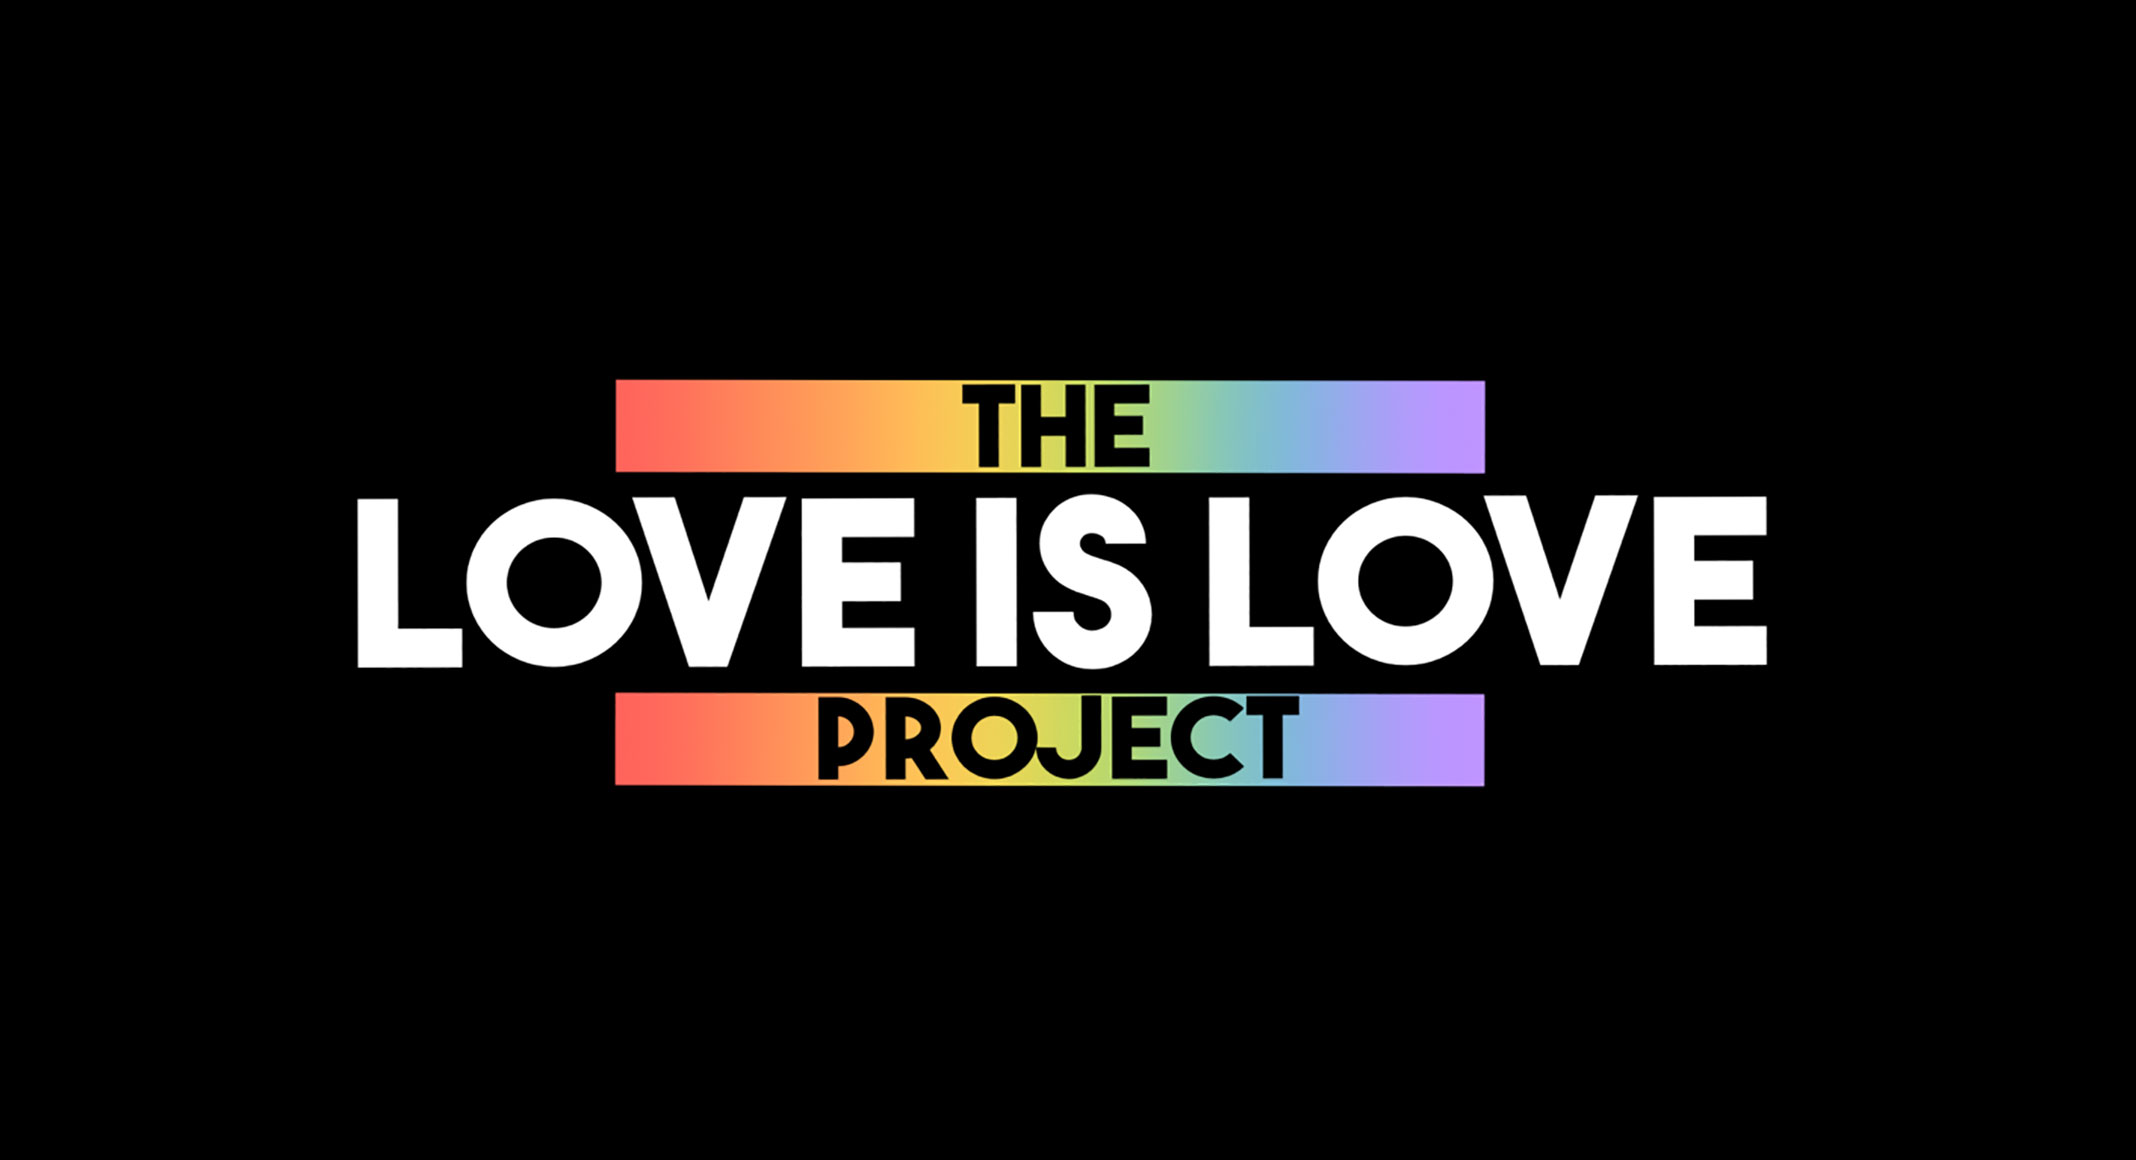 The Love is Love Project